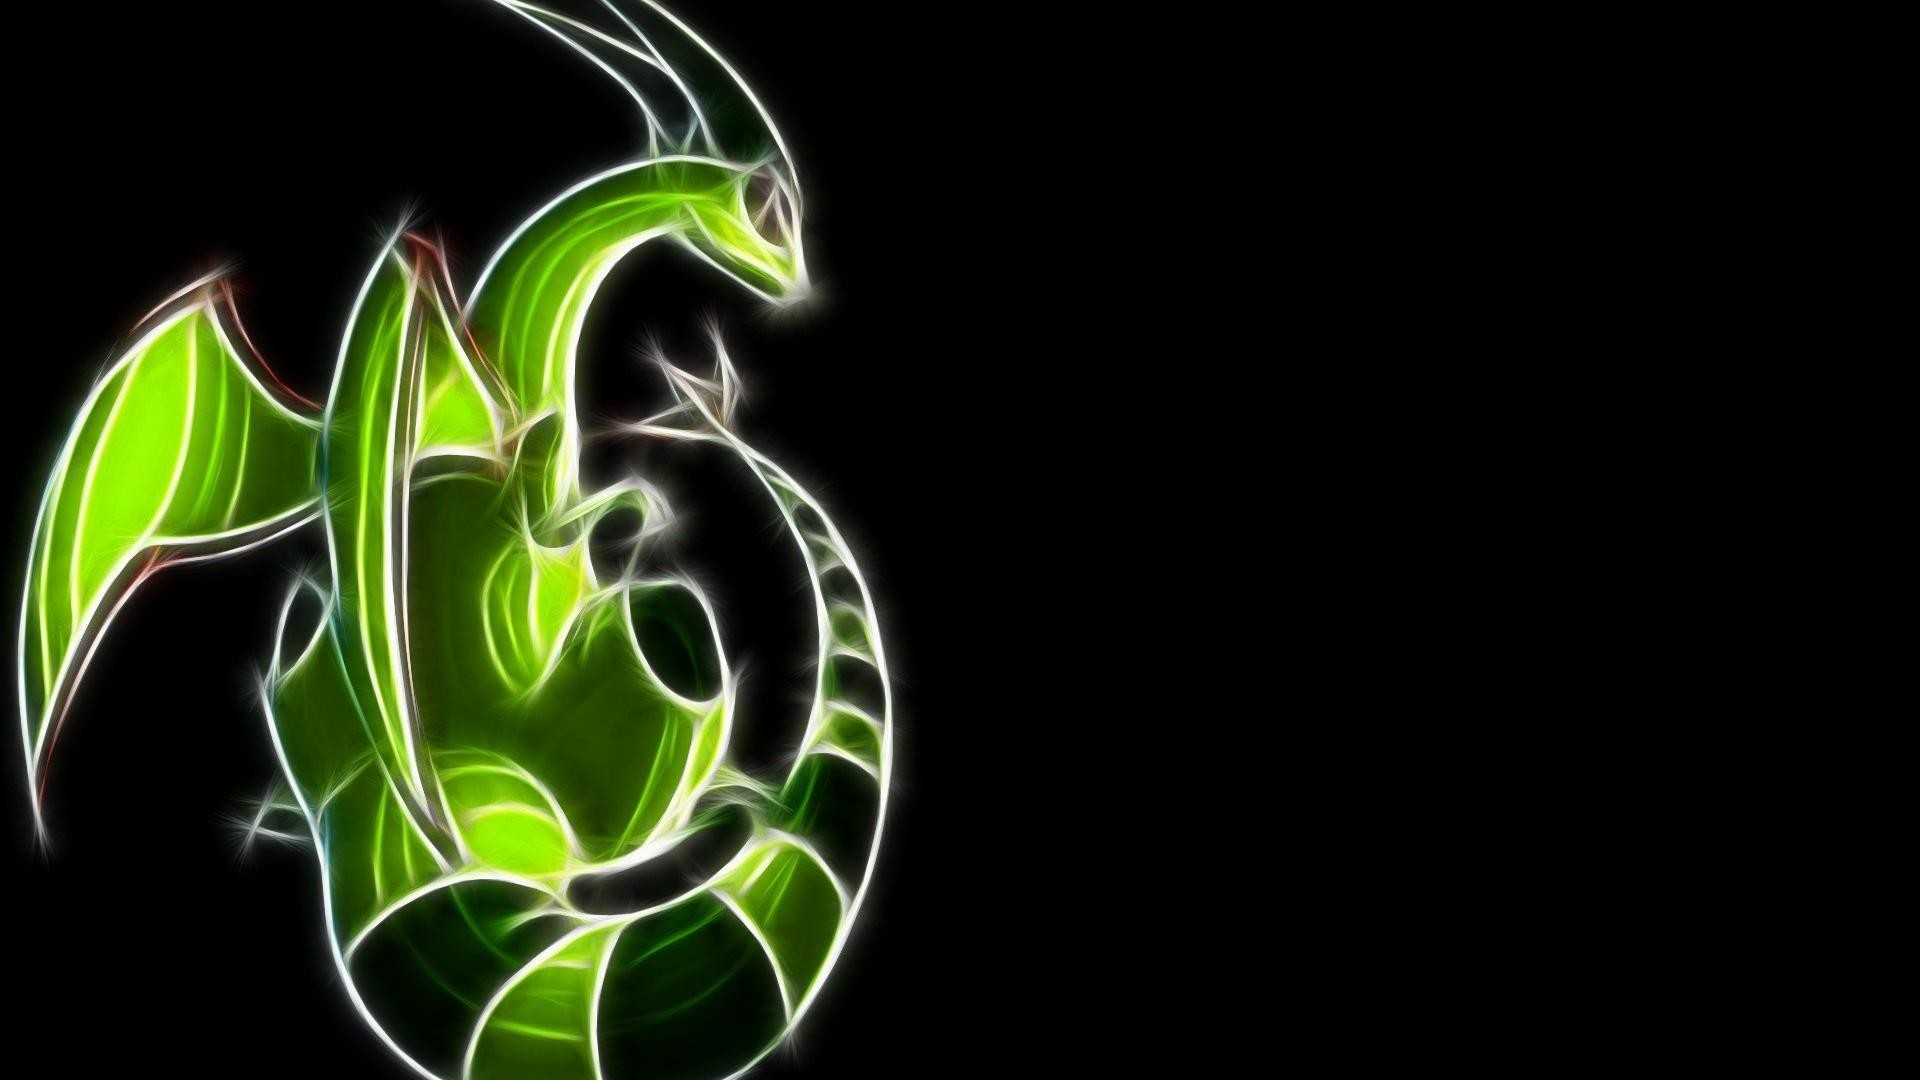 Arceus Hd Wallpapers: Pokemon Wallpaper Arceus (72+ Images